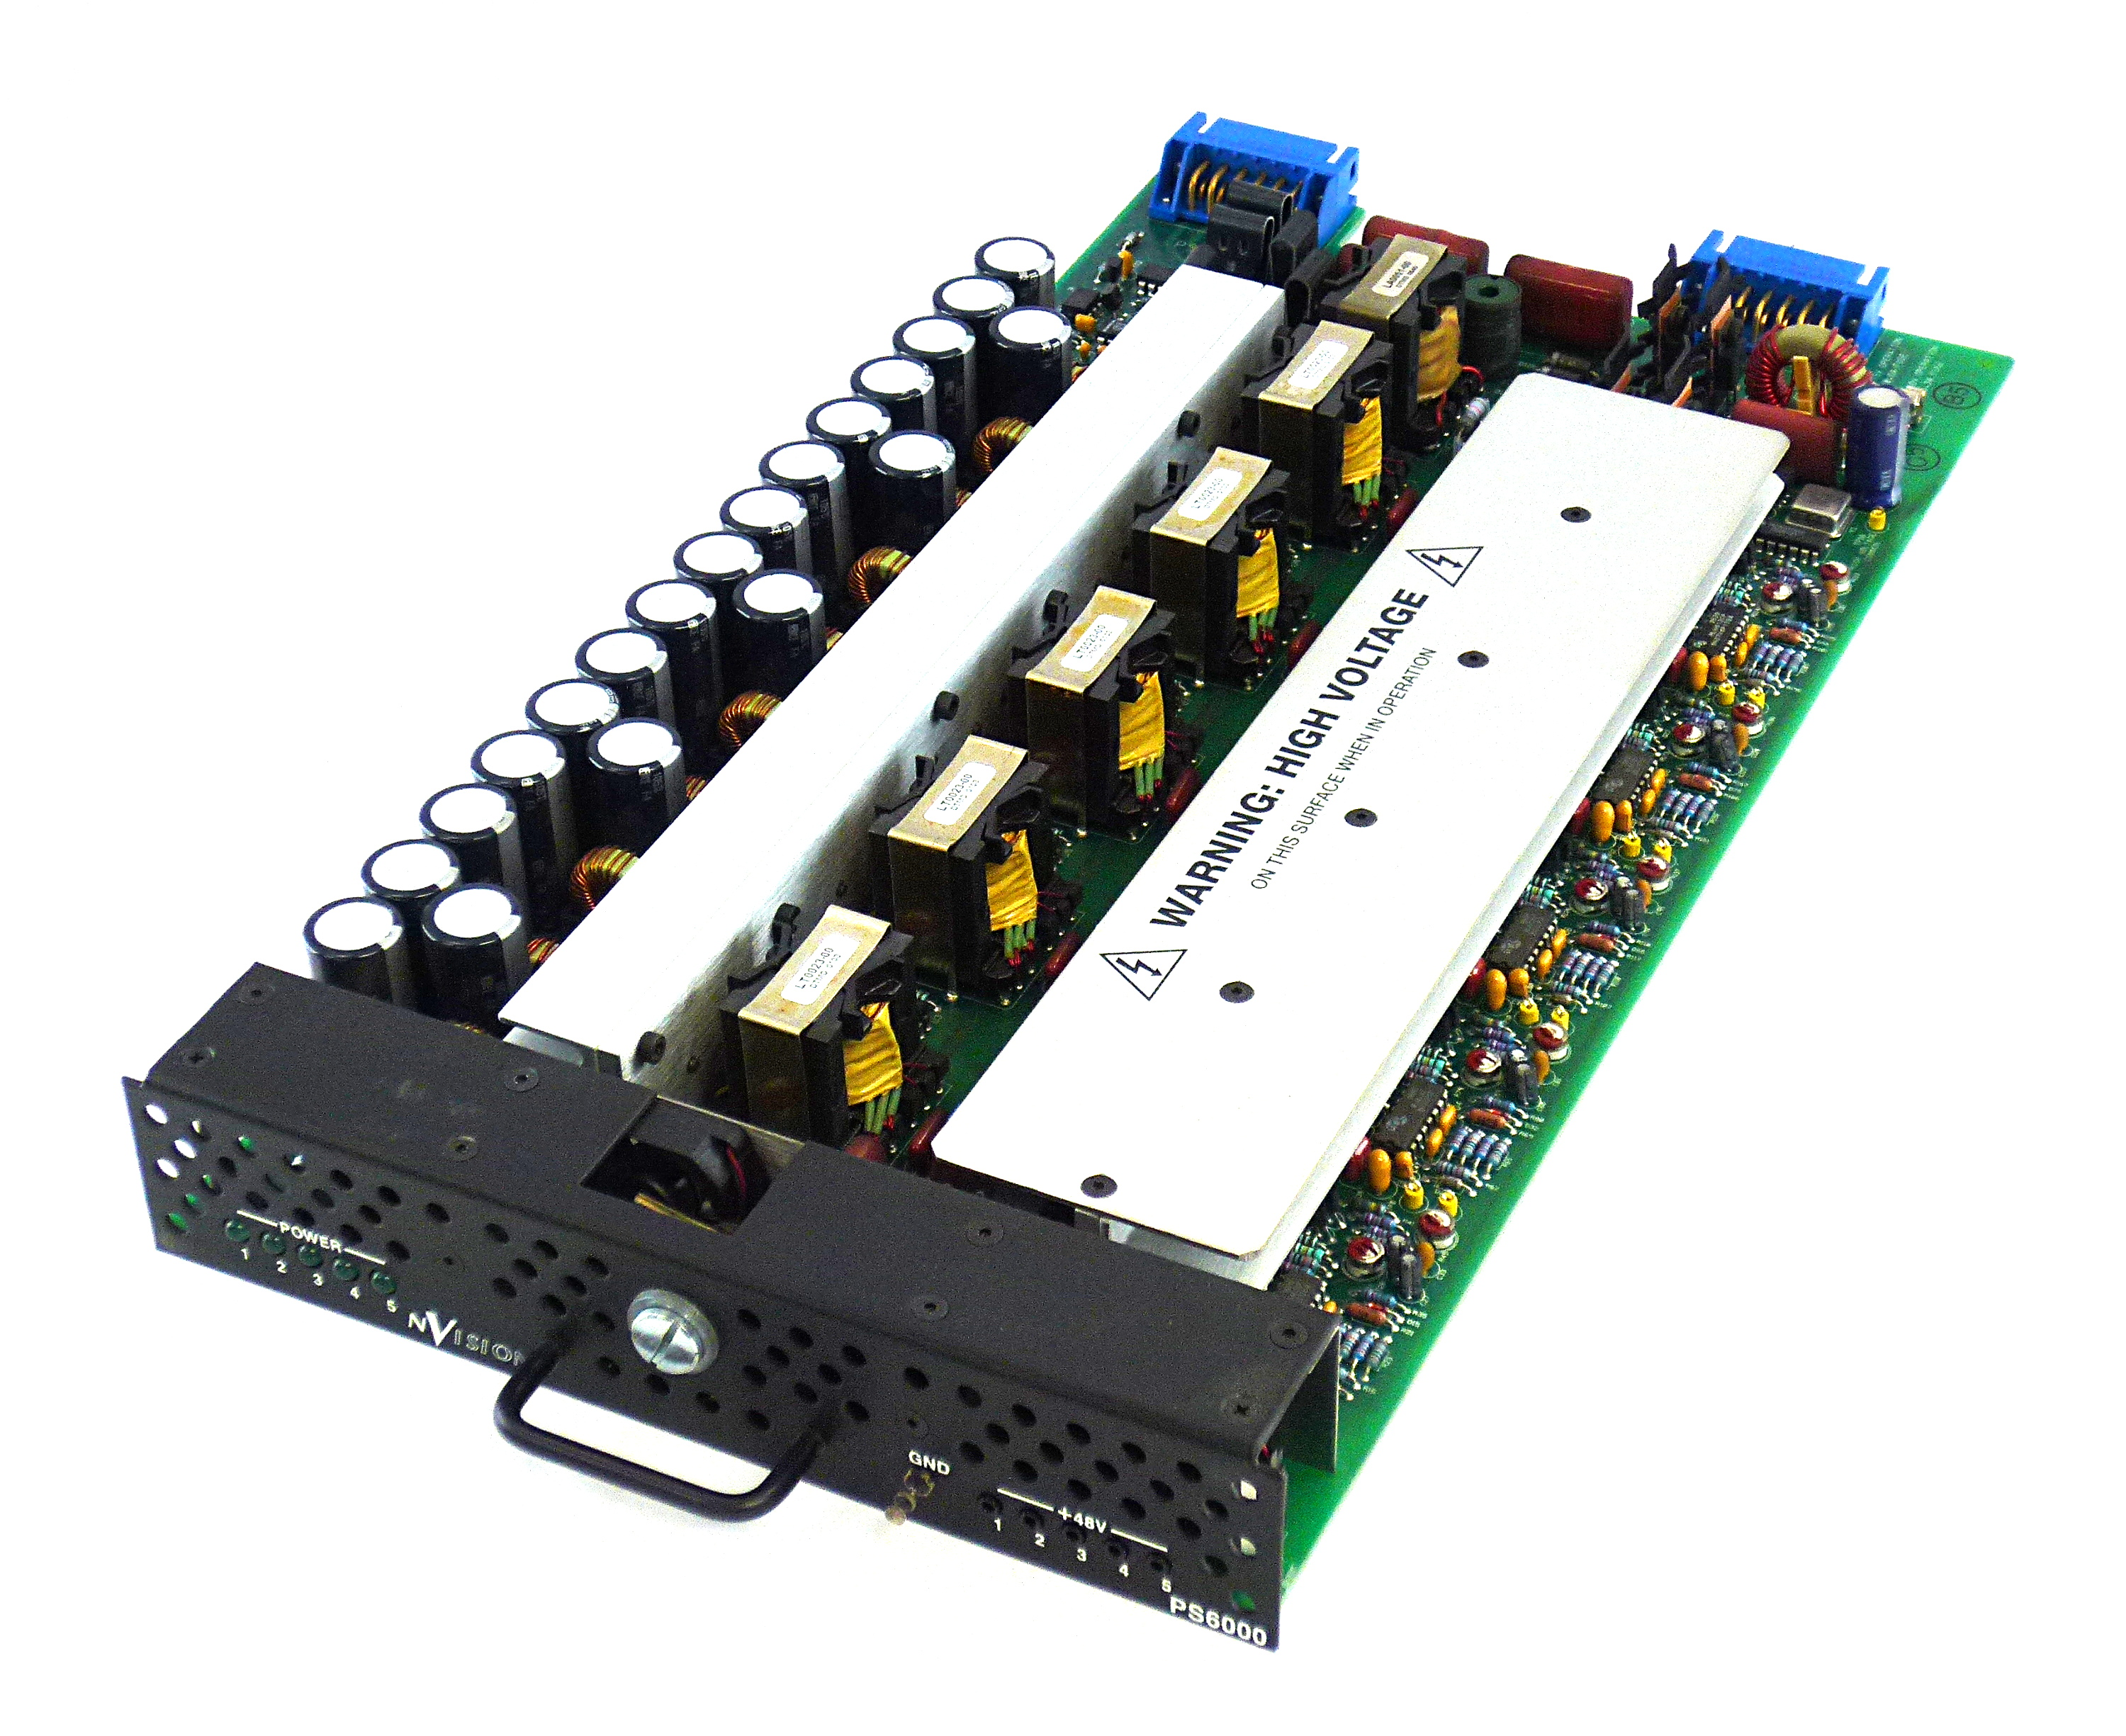 NVision PS6000-00 E1 NV7256 Envoy Power Supply Board